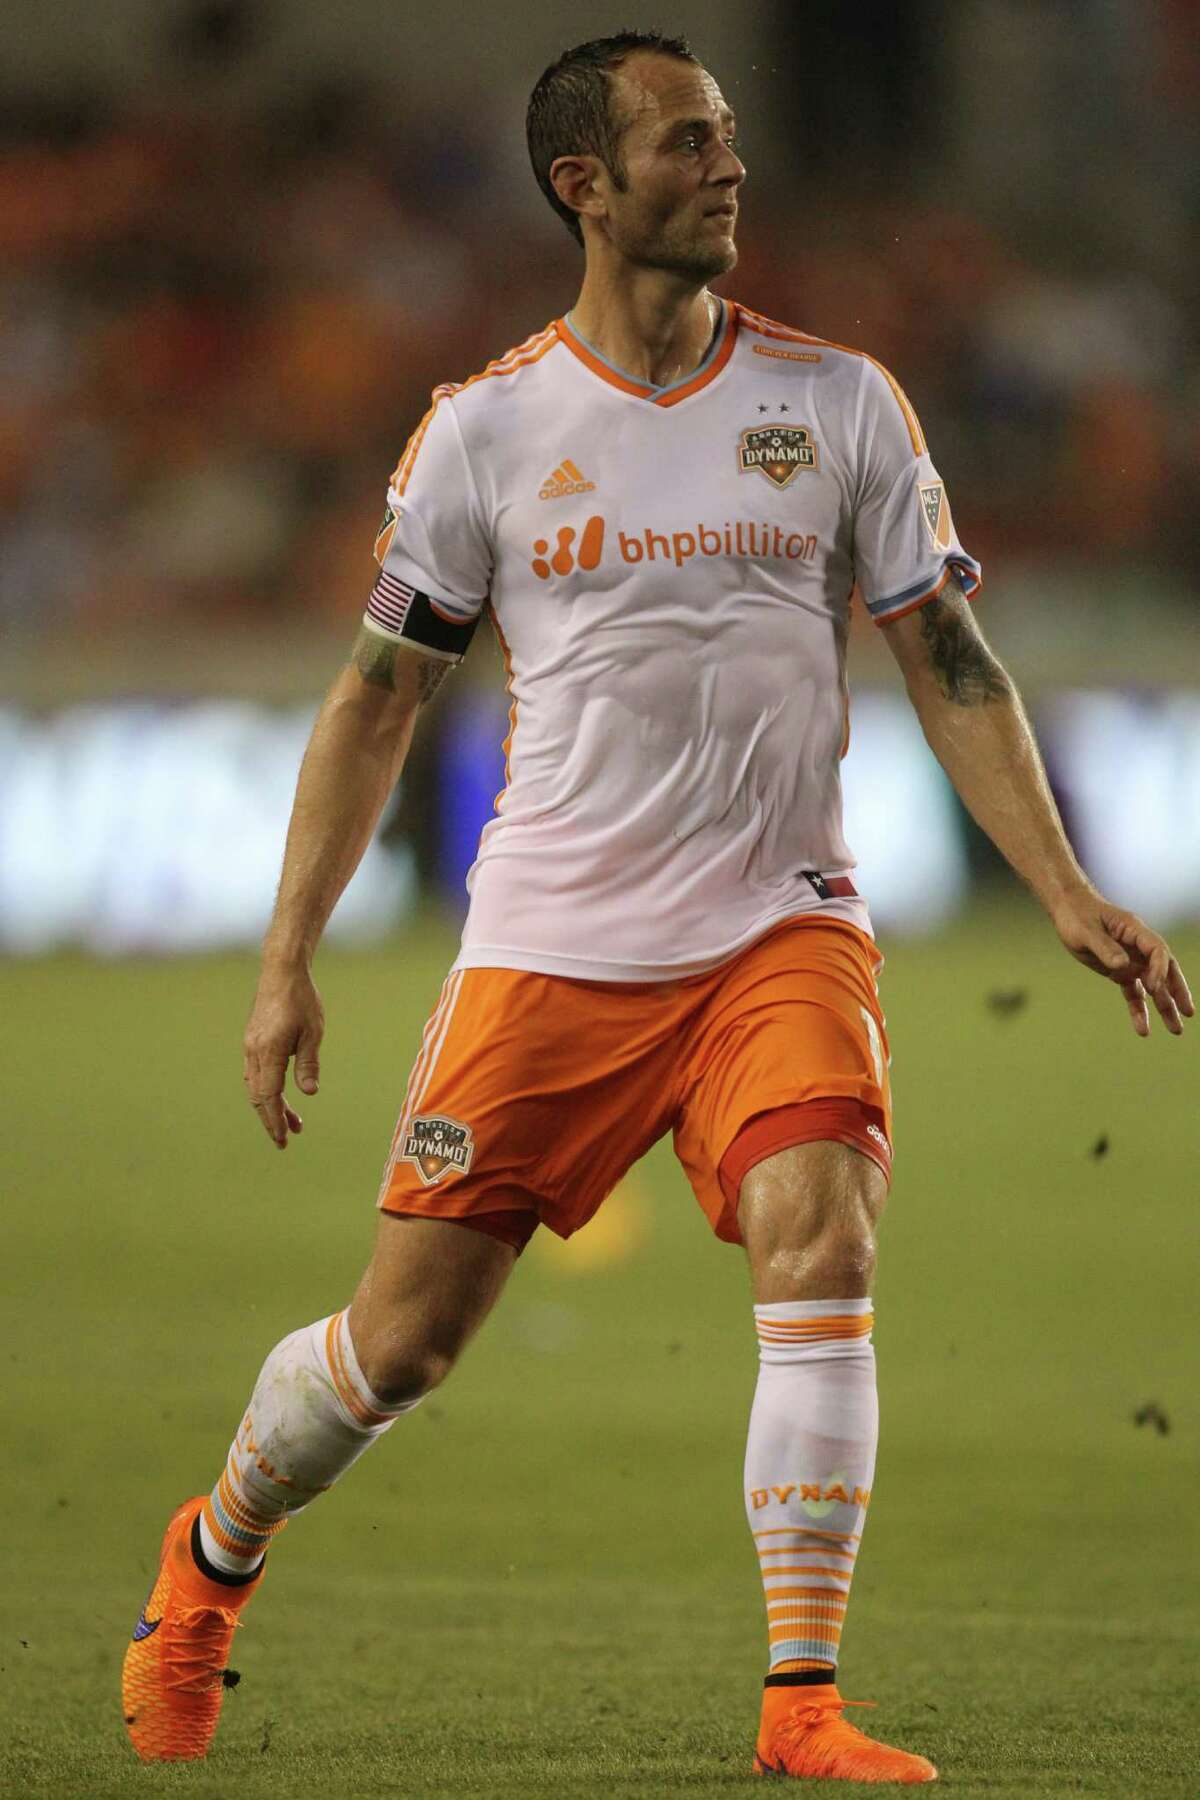 Houston Dynamo midfielder Brad Davis (11) follows the game during the first half of the game agains the Portland Timber, Saturday, May 16, 2015, in Houston. Dynamo won 3-1.